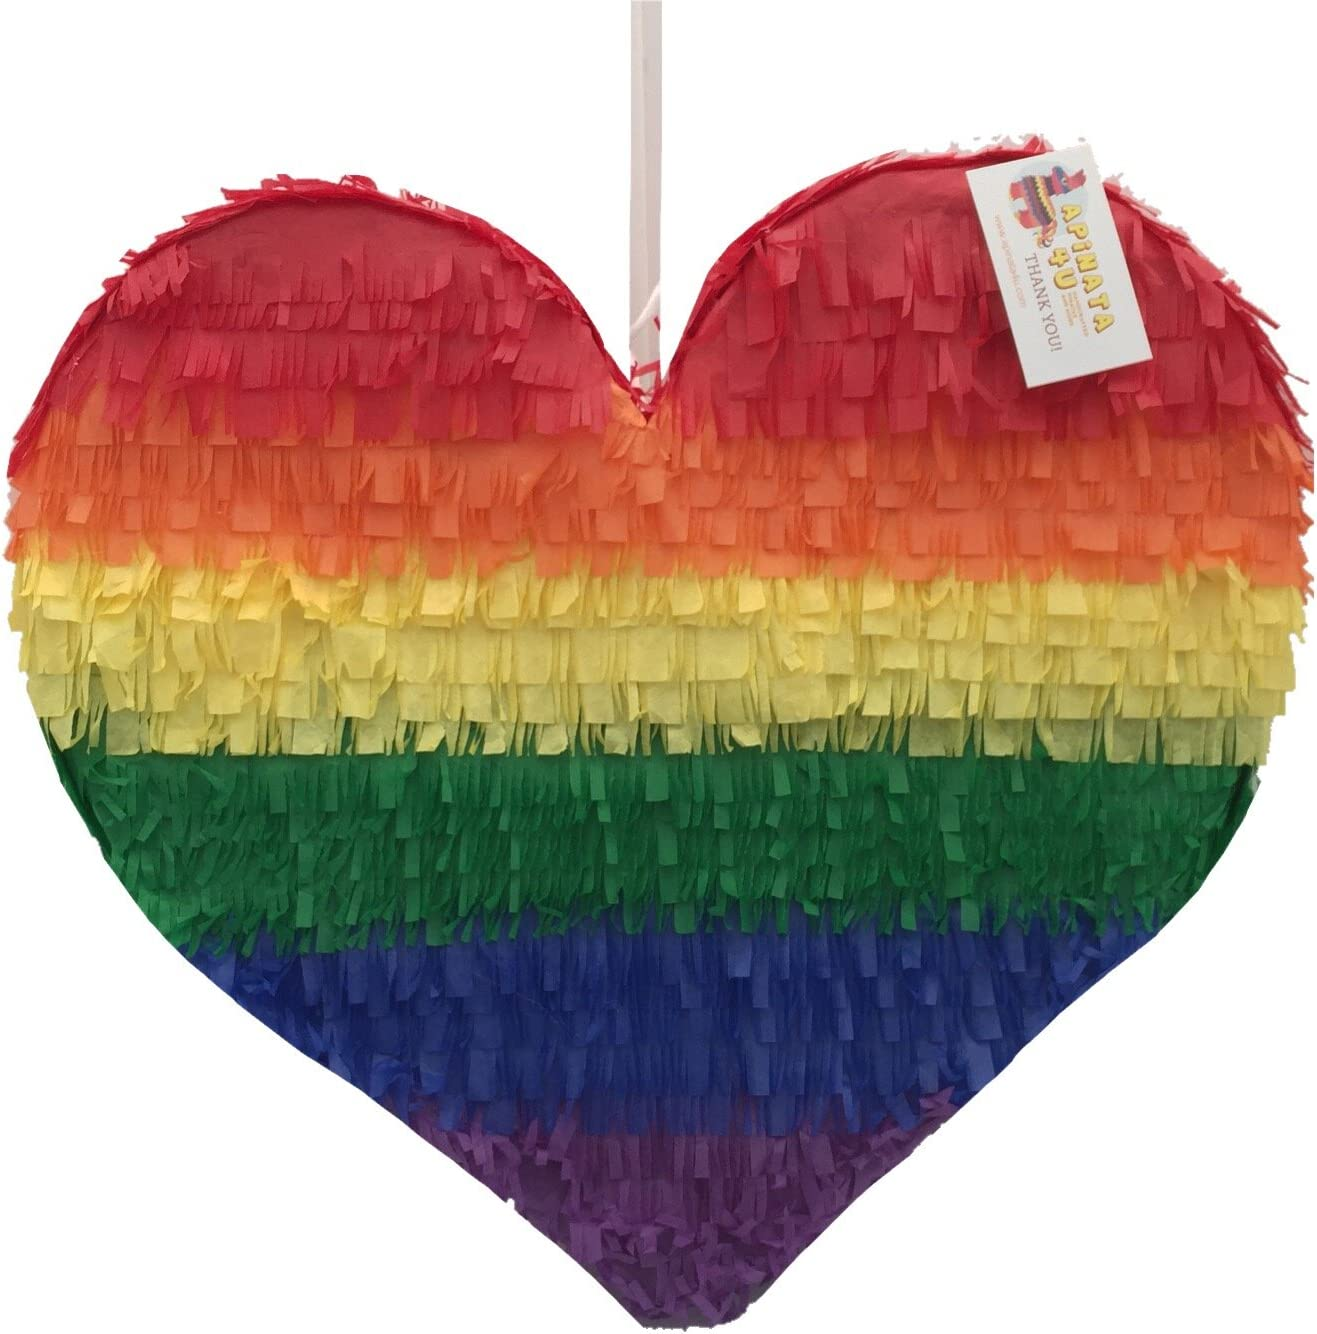 Rainbow Heart Free specialty shop shipping anywhere in the nation Pinata